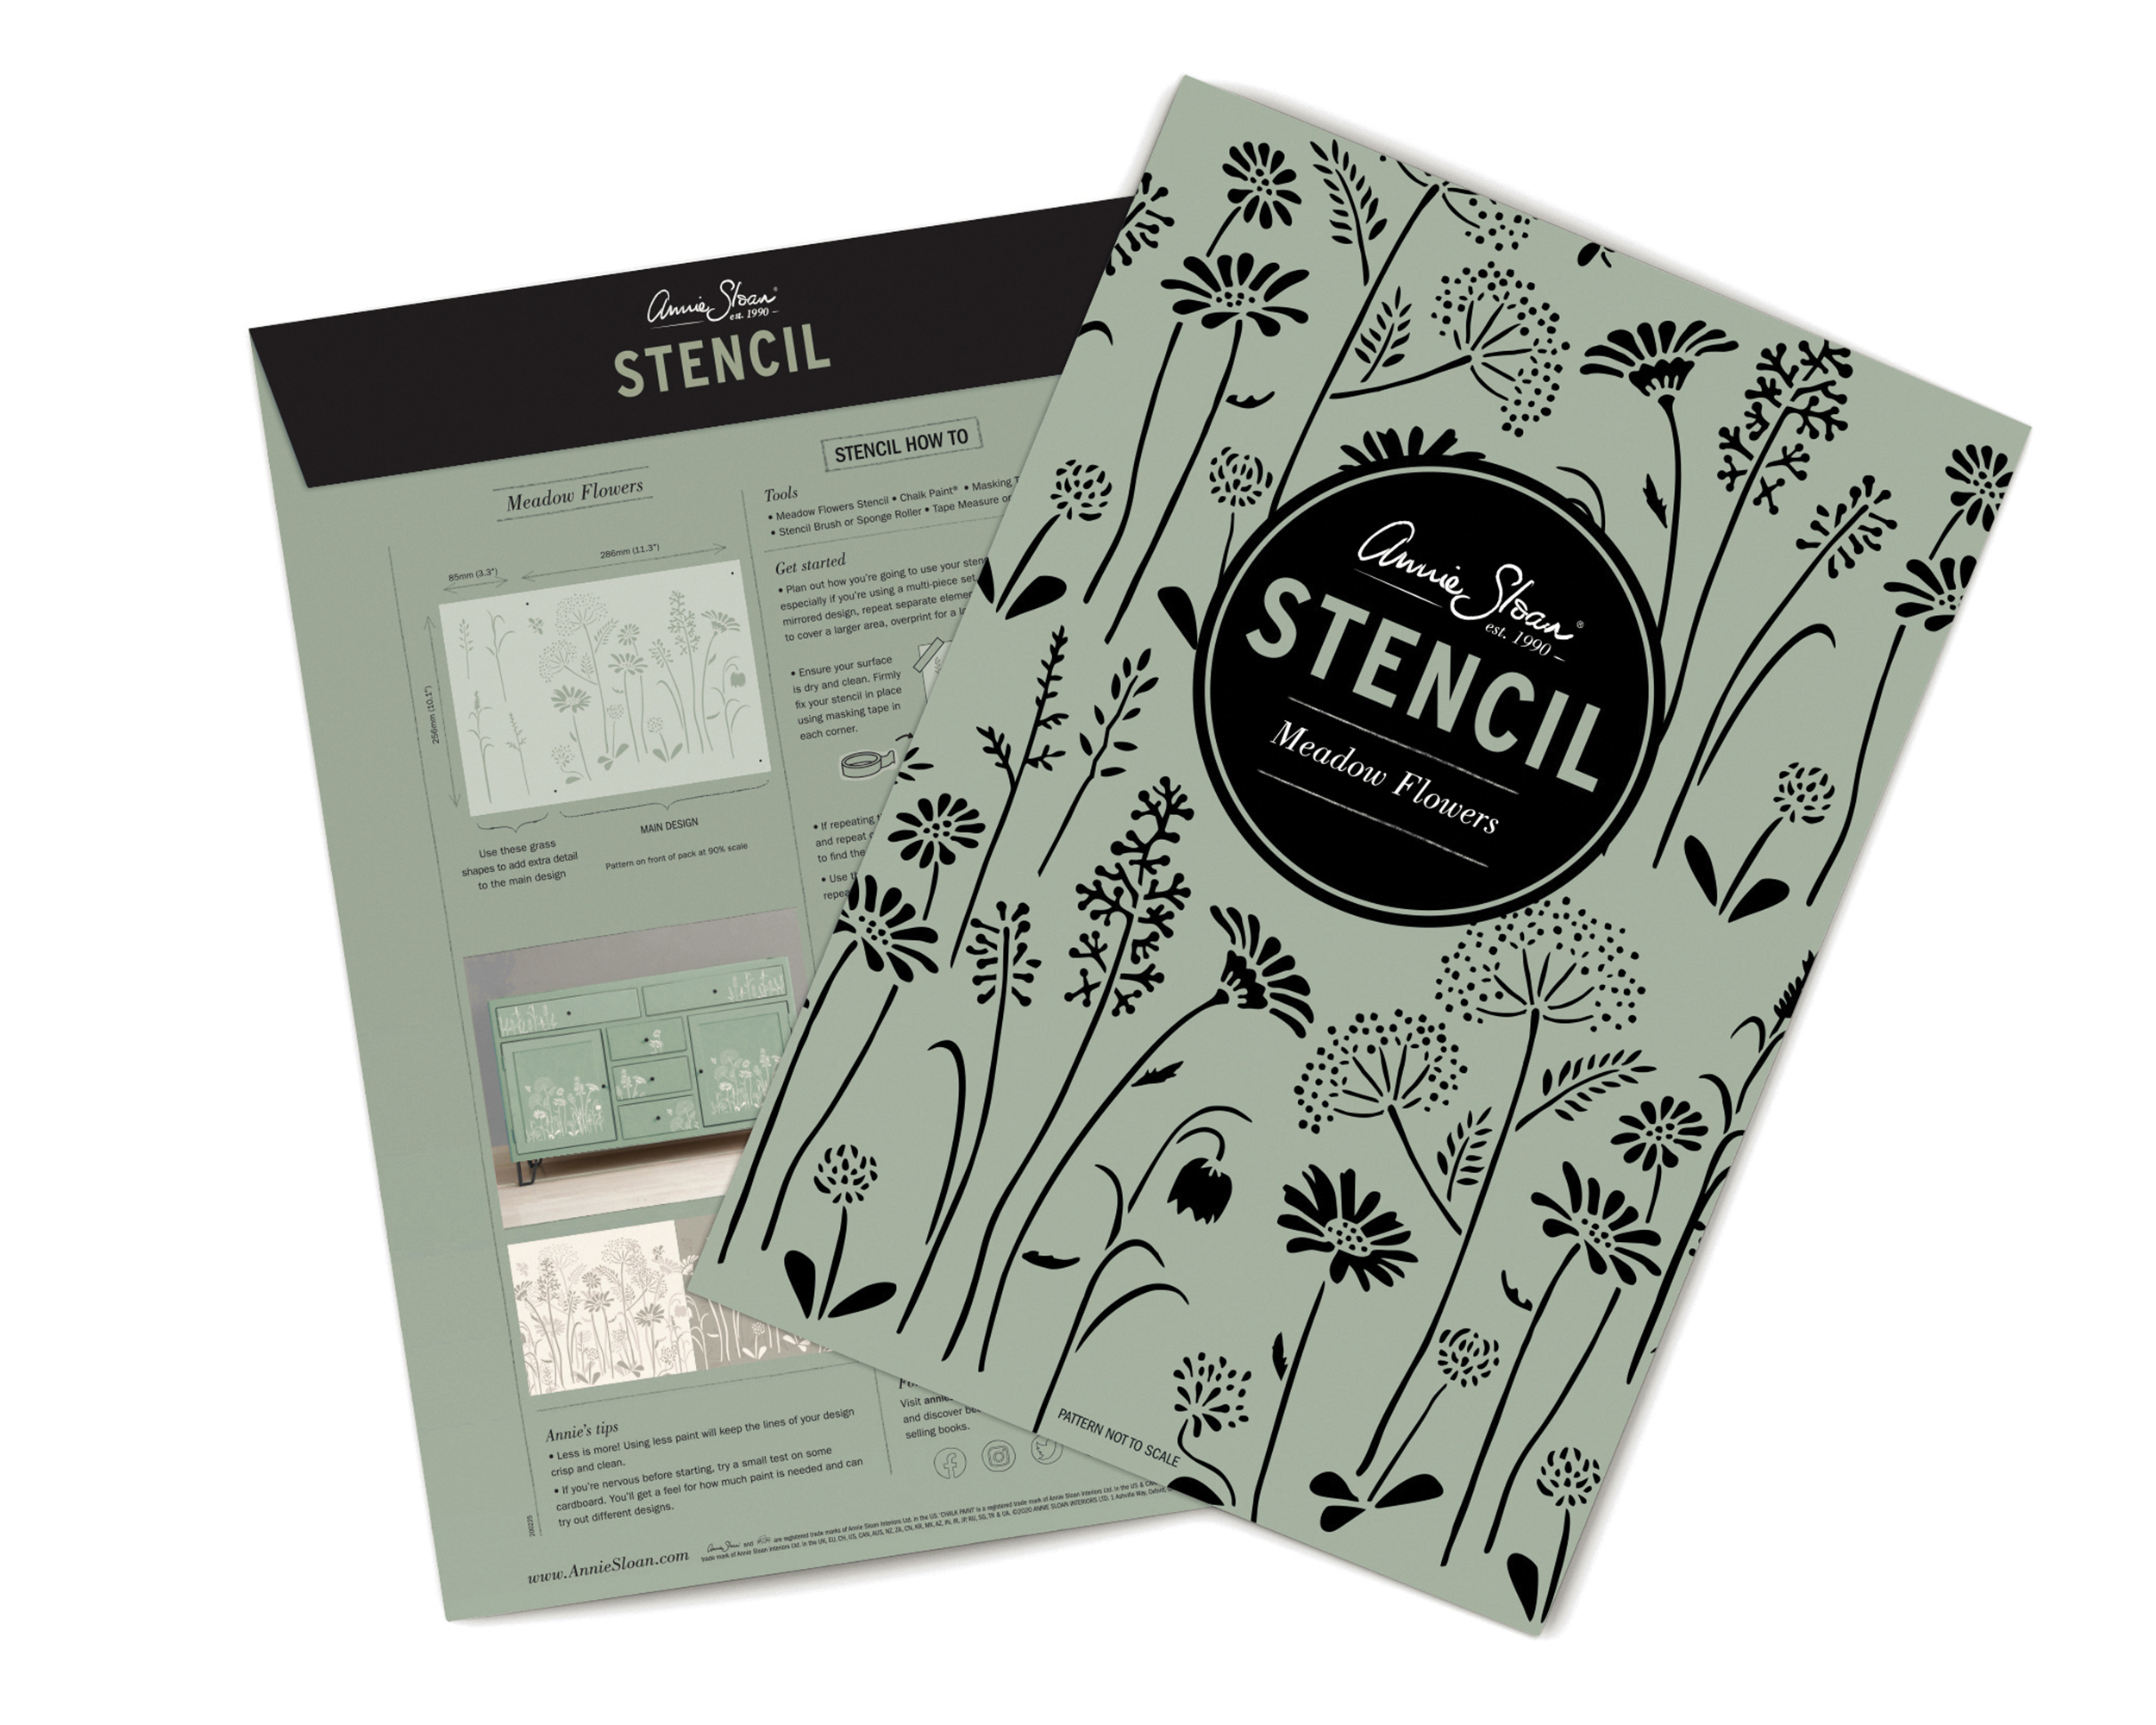 Meadow-Flowers-Annie-Sloan-Stencil-packa